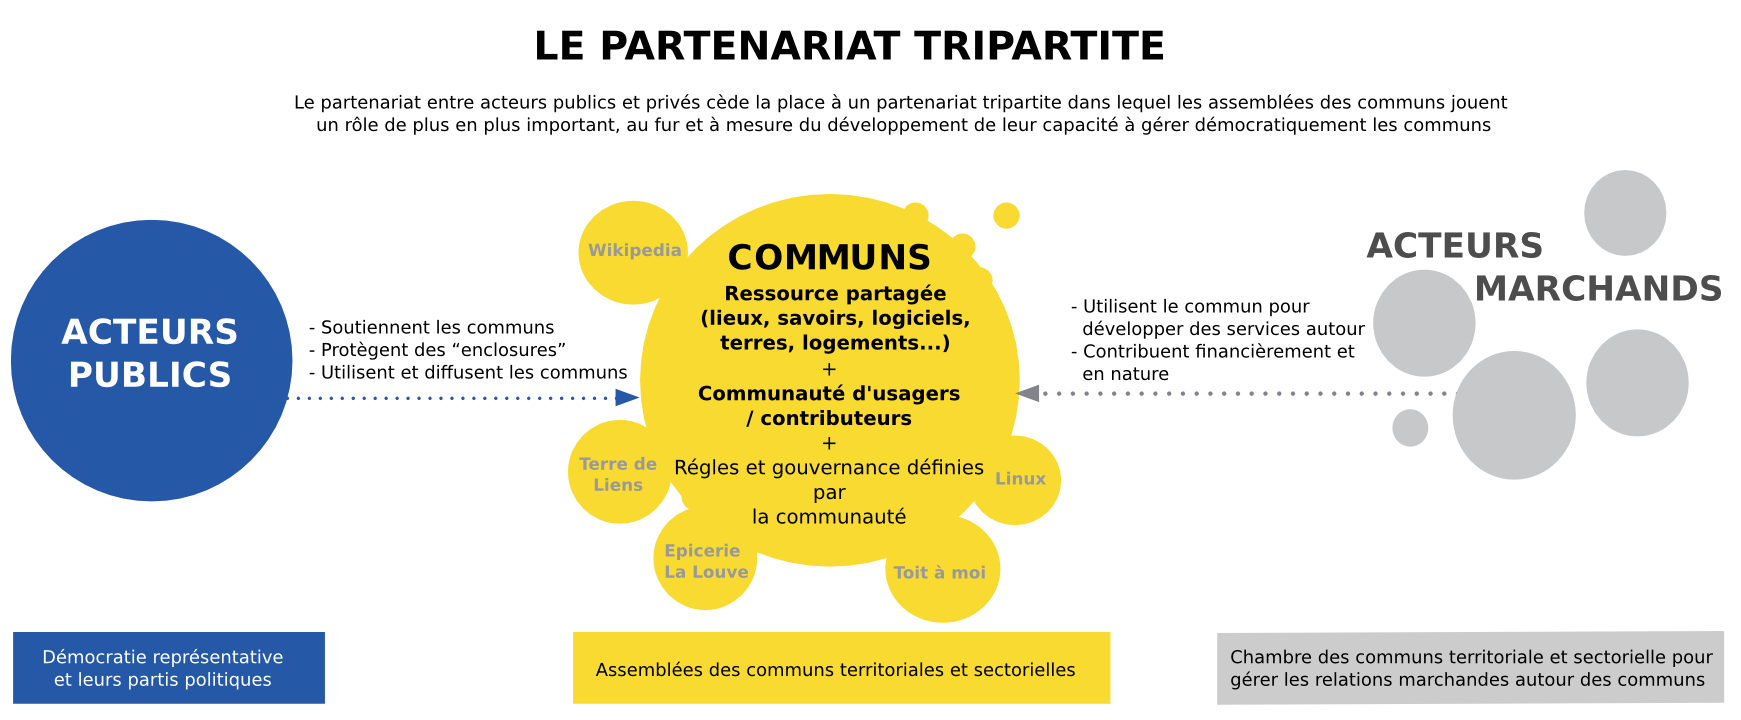 Partenariat tripartite privé public communs - CC by SA 3.0